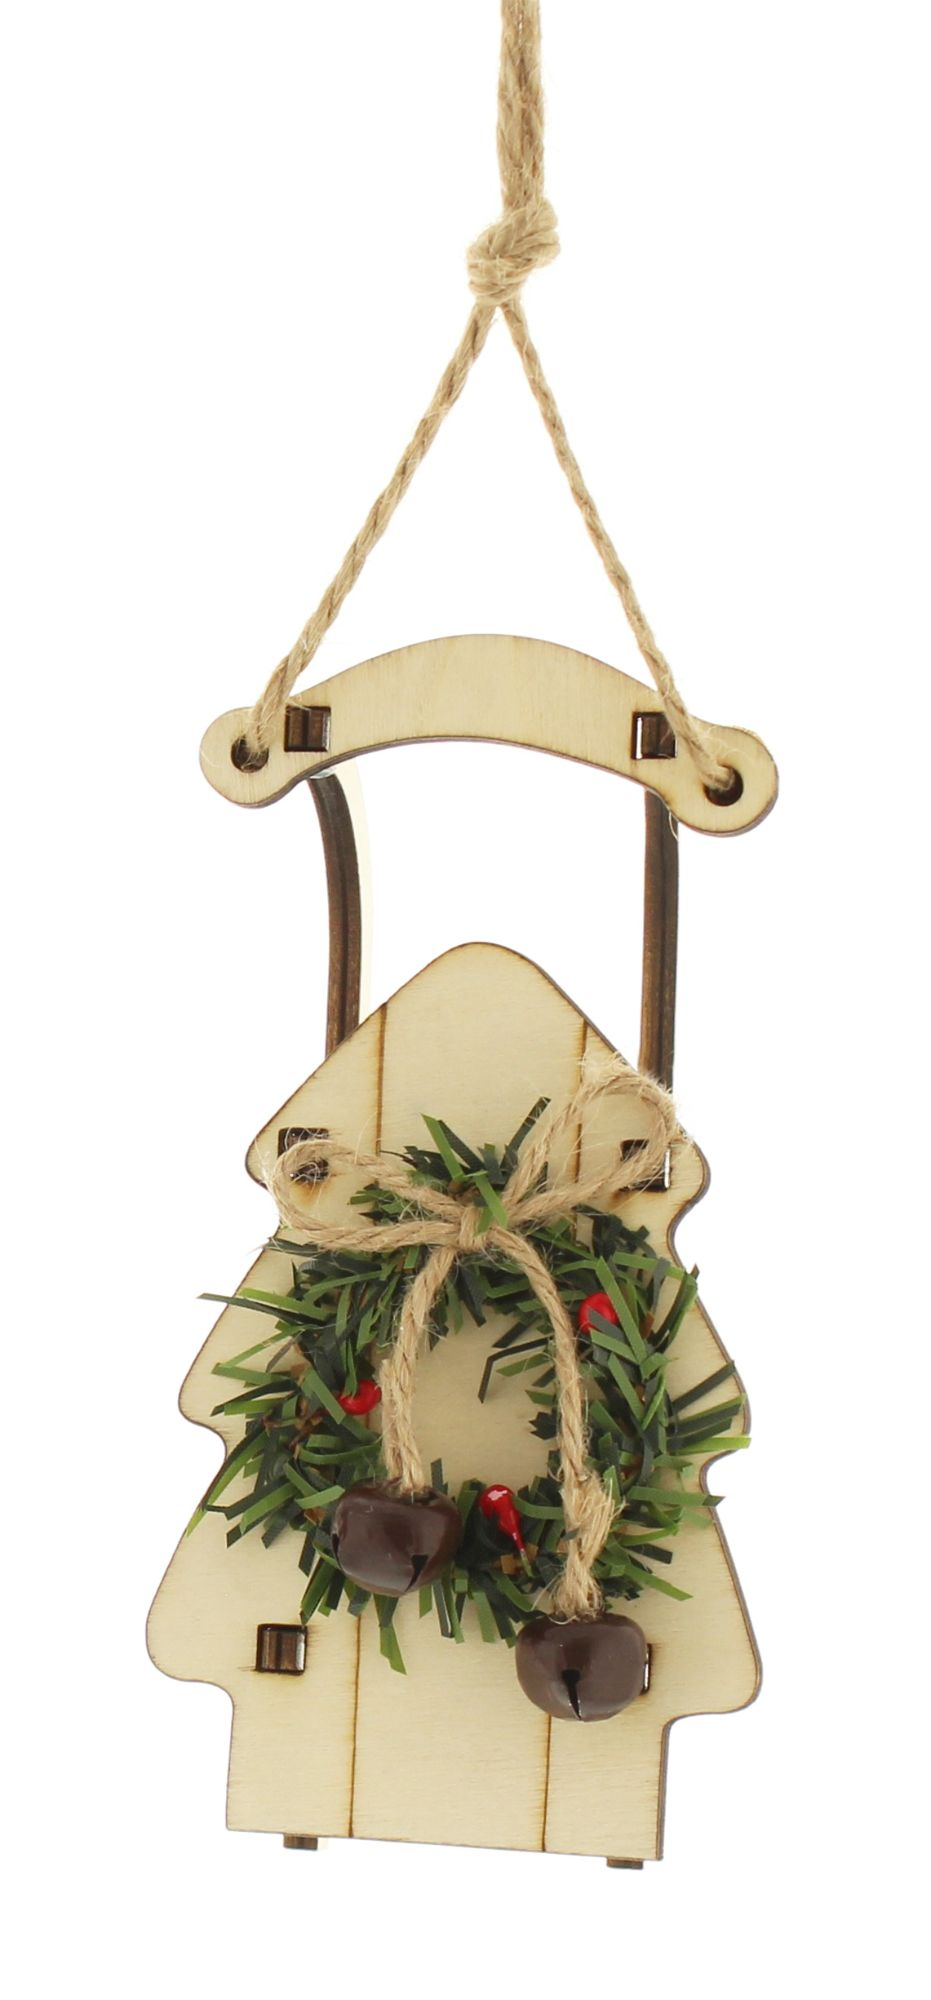 White Rustic Wooden Sleigh Hanging Bauble with Wreath and a Christmas Bell